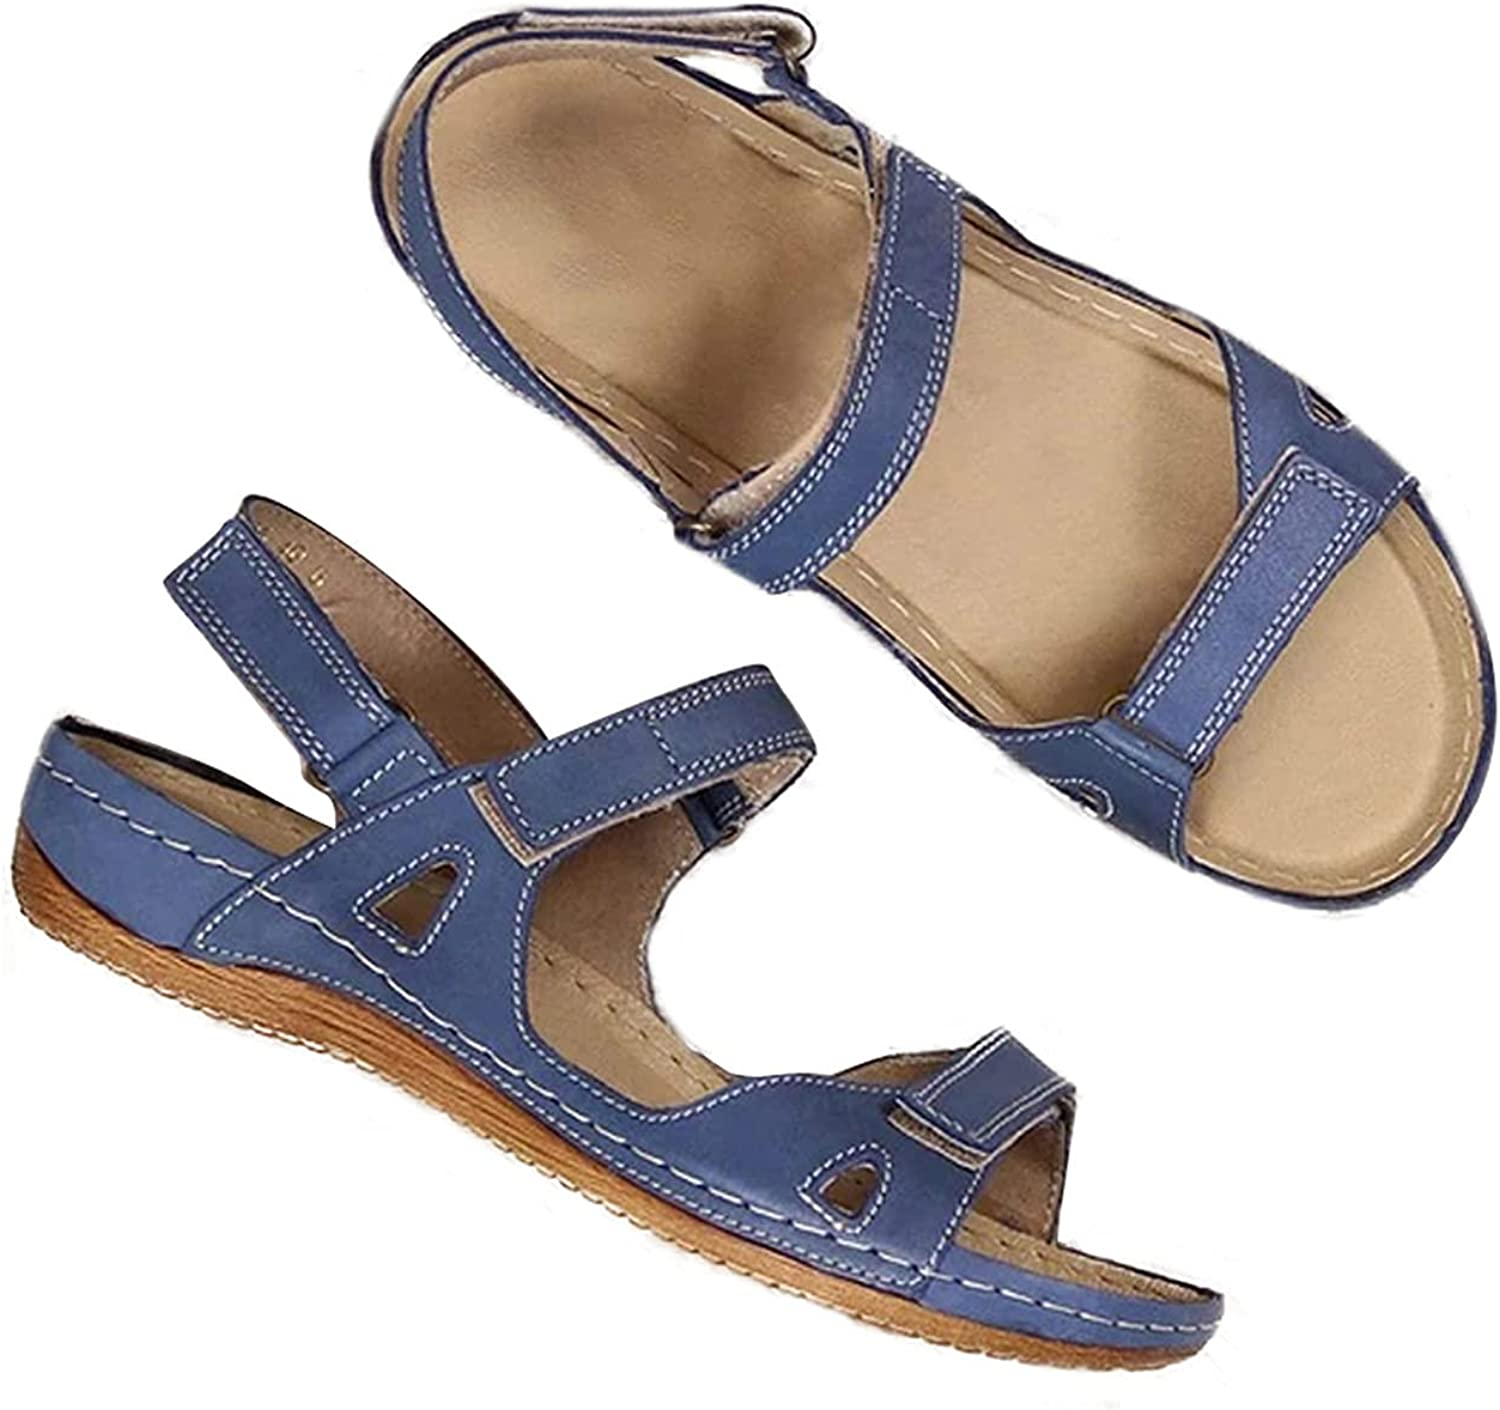 Women's Walking Sandals Comfy for Athletic  Outdoor, Comfortabl